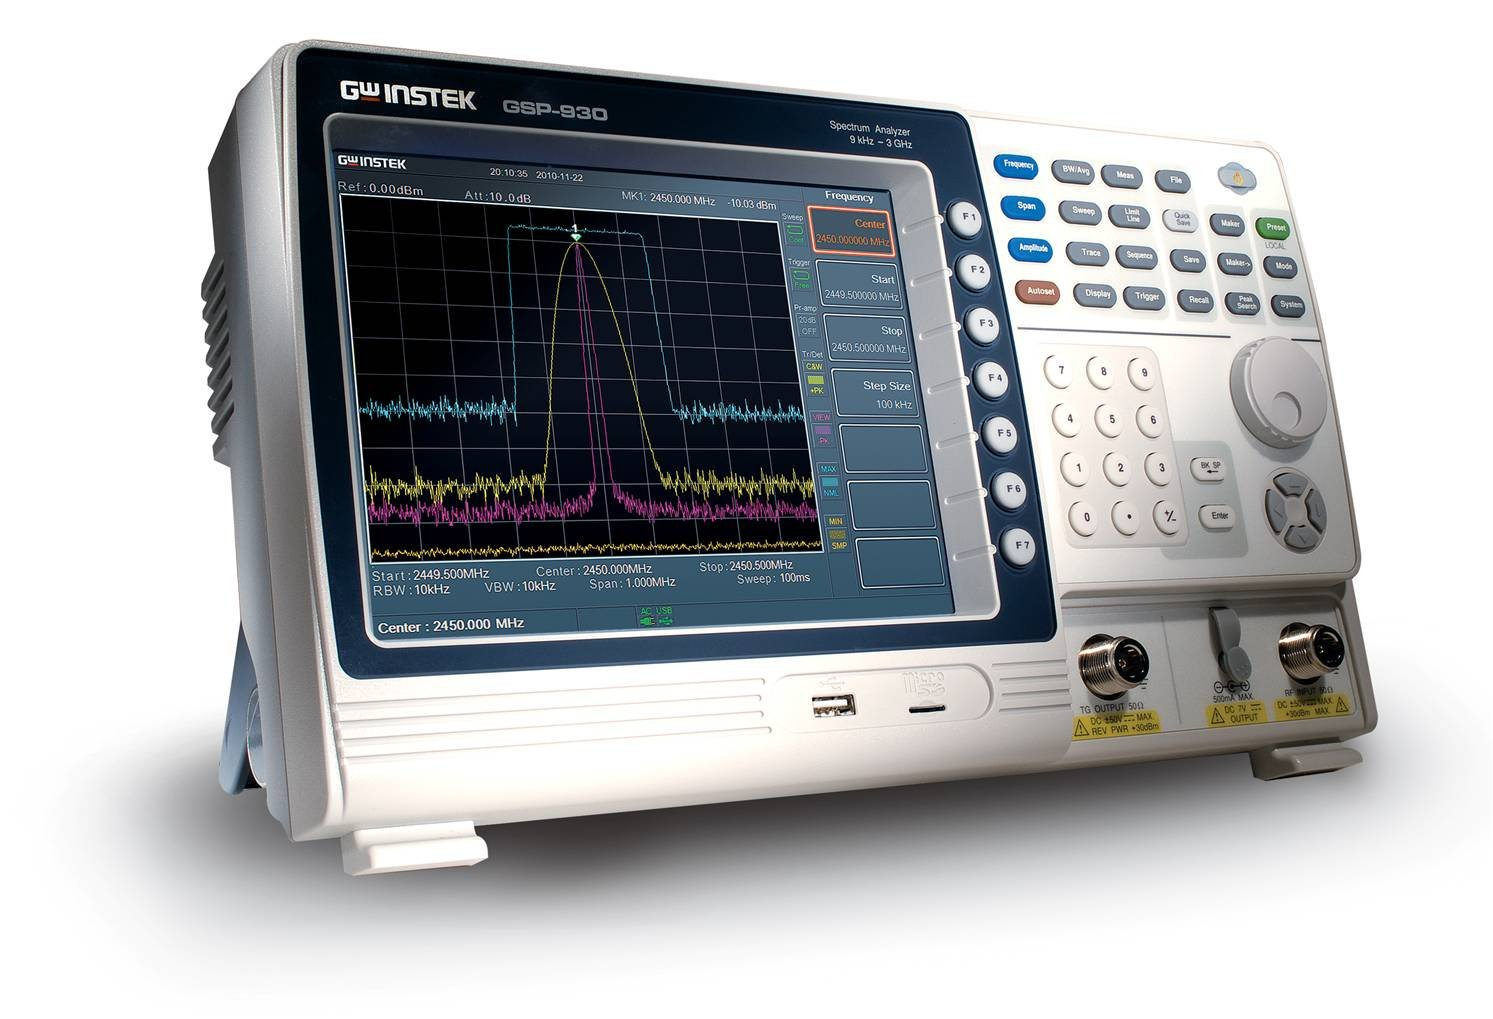 GW Instek GSP-930 Color Display Spectrum Analyzer, 9KHz to 3GHz Frequency